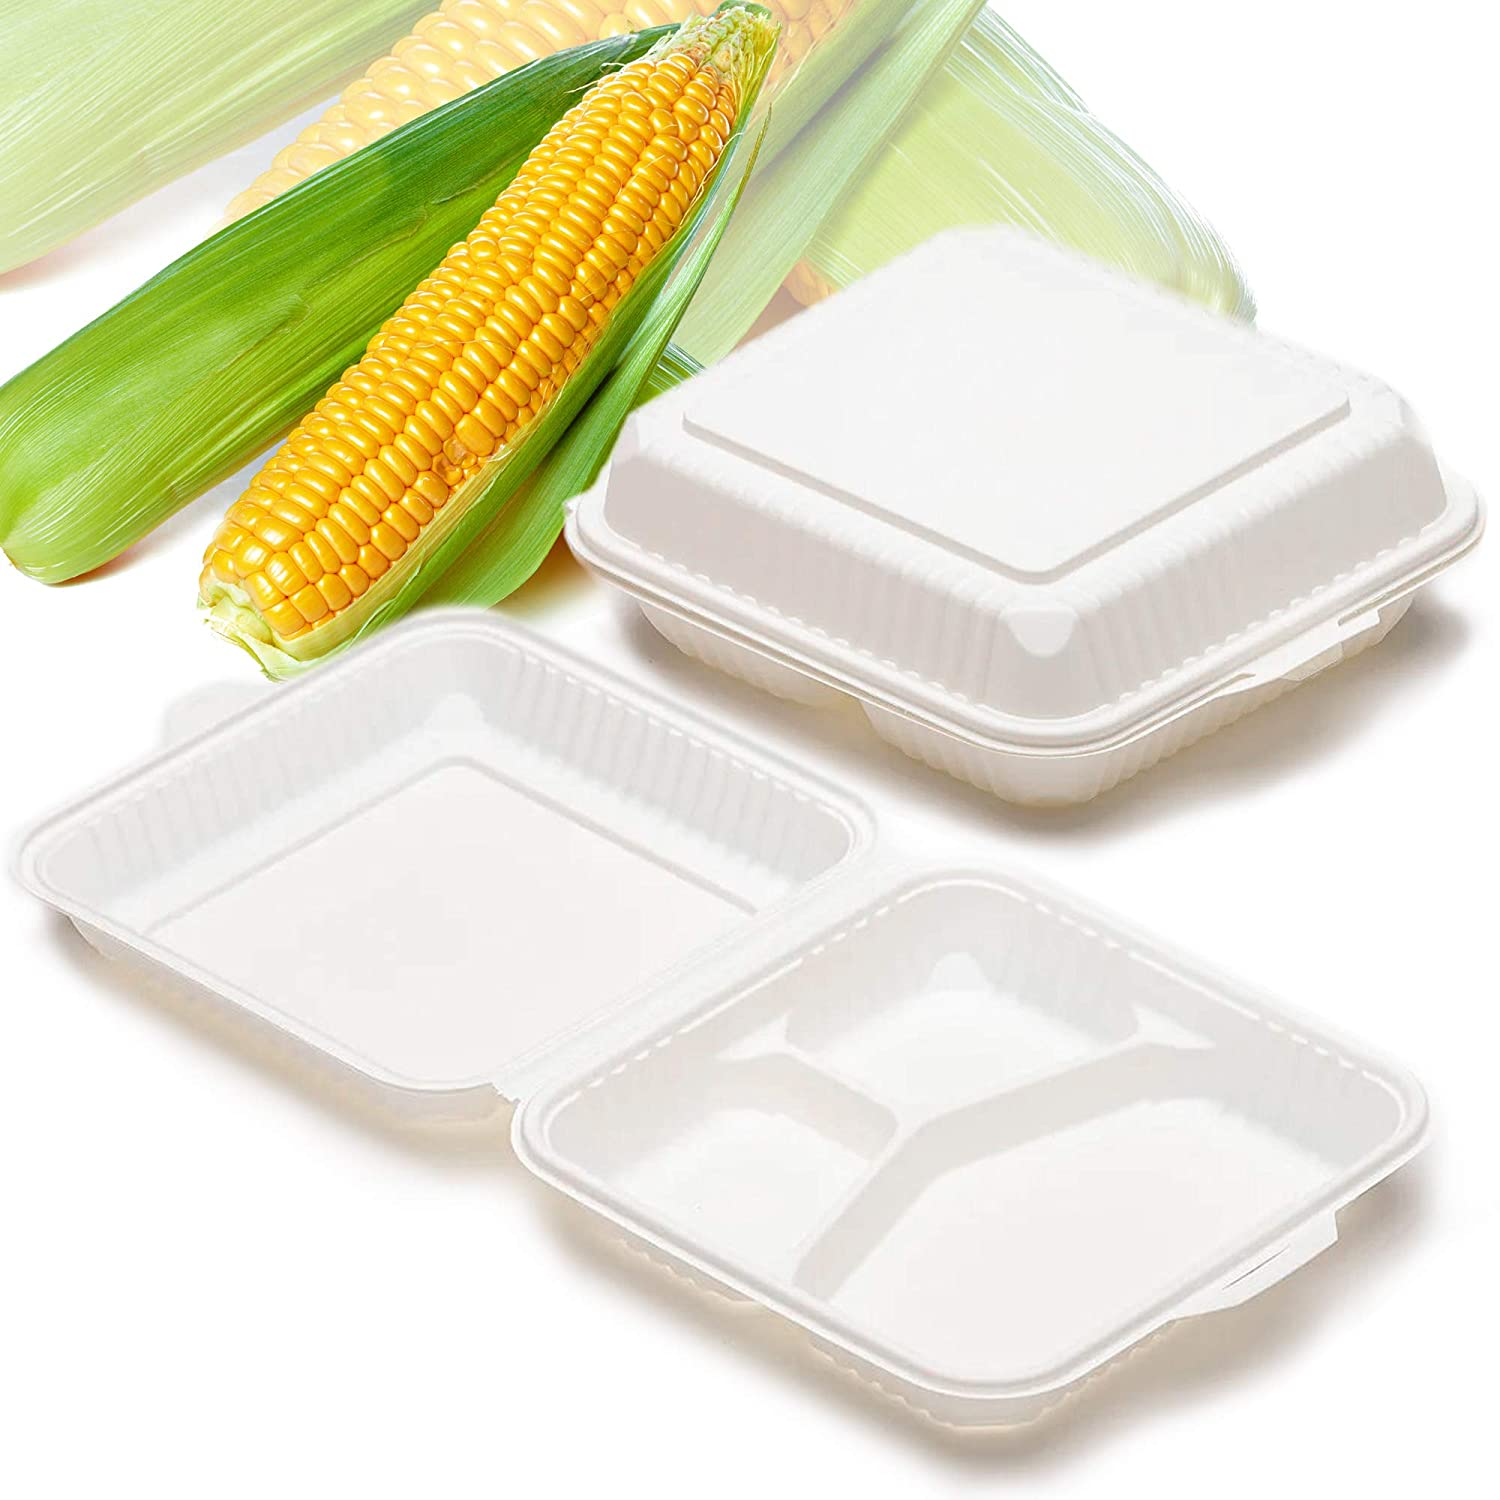 Compostable Clamshell Takeout Containers, 3-Compartments Disposable Eco-Friendly Togo Boxes [9x9